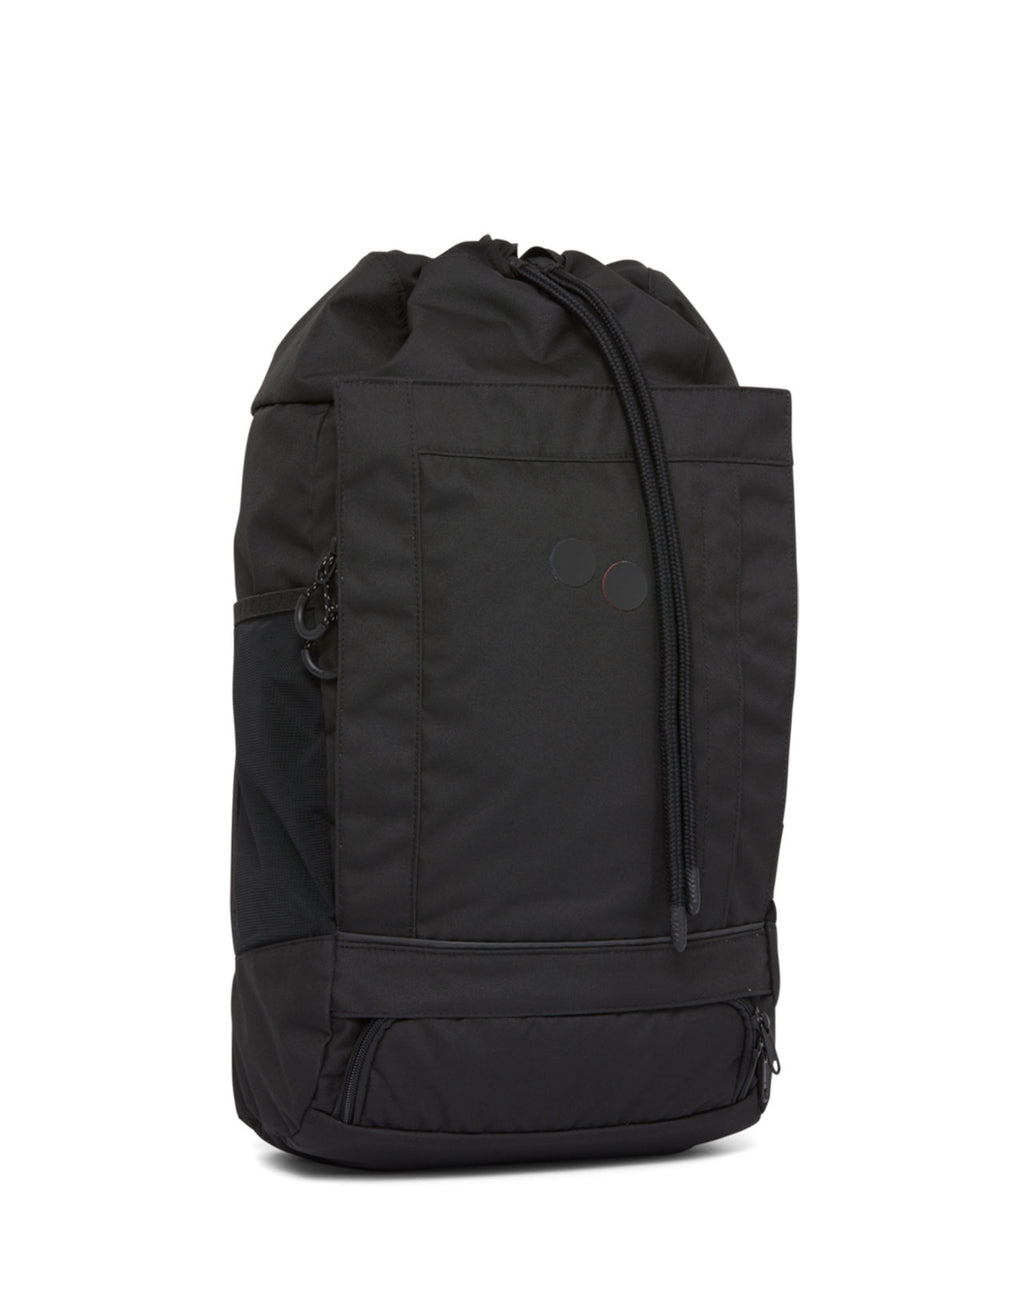 Sac à dos Blok Medium Rooted Black PinqPonq de face